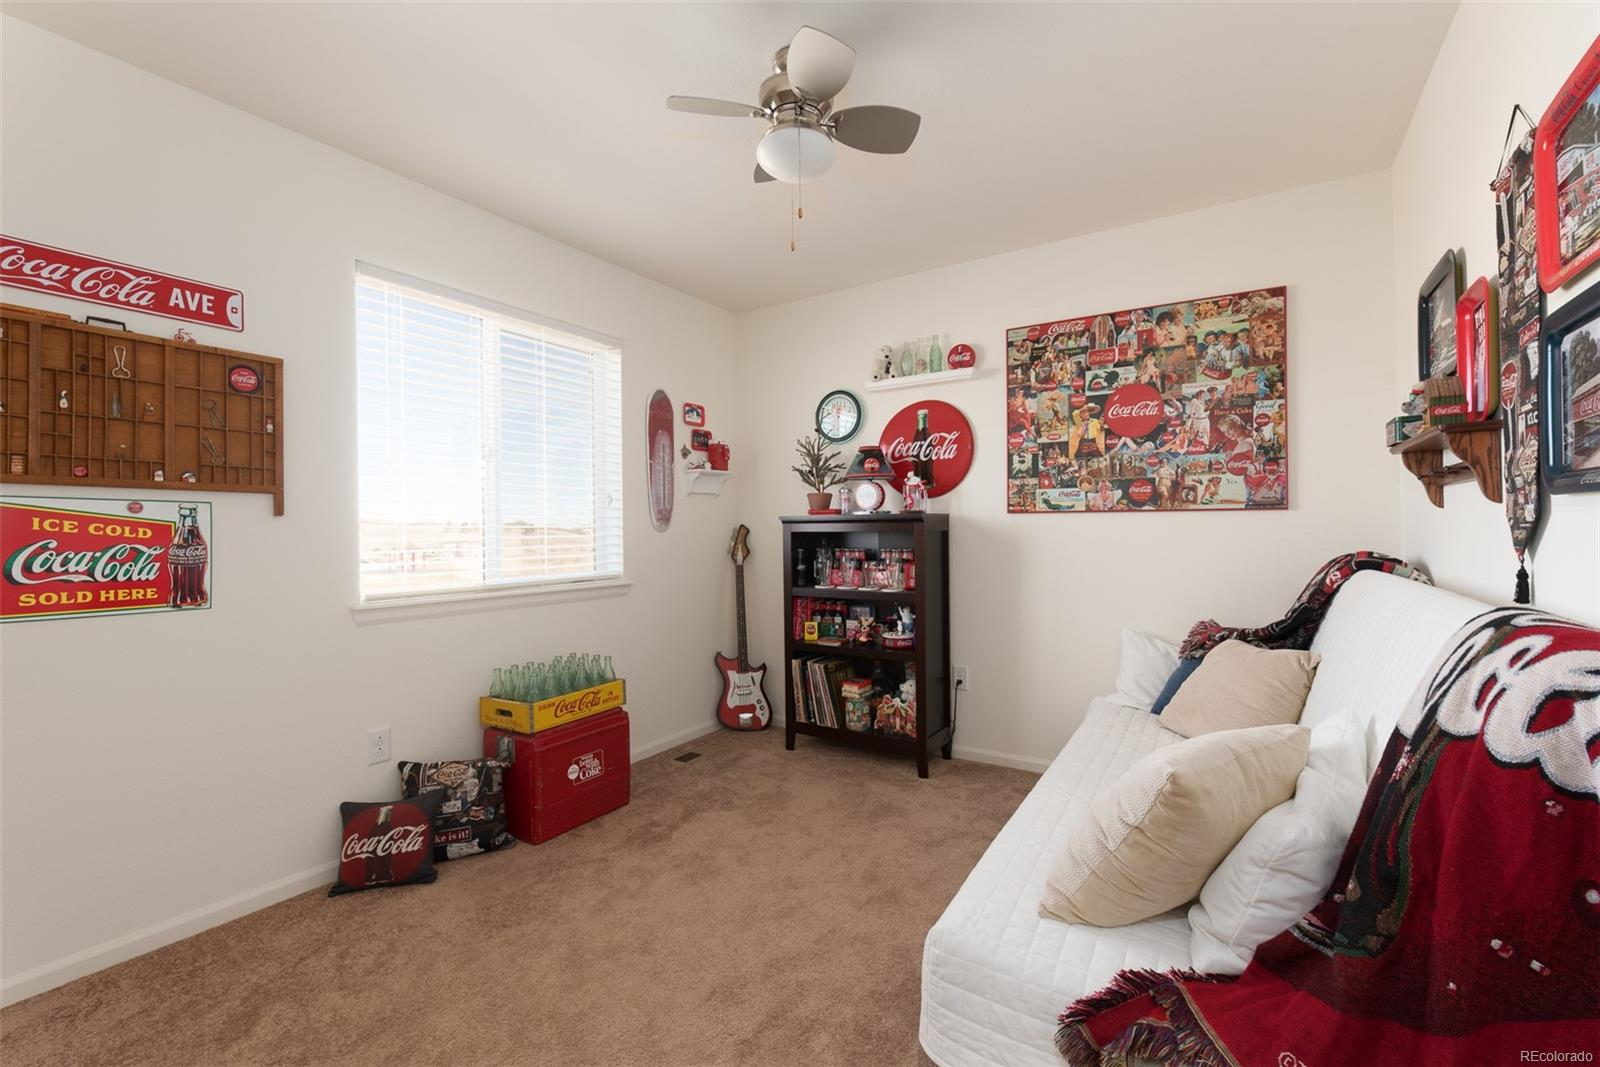 Third additional bedroom located on upper level.